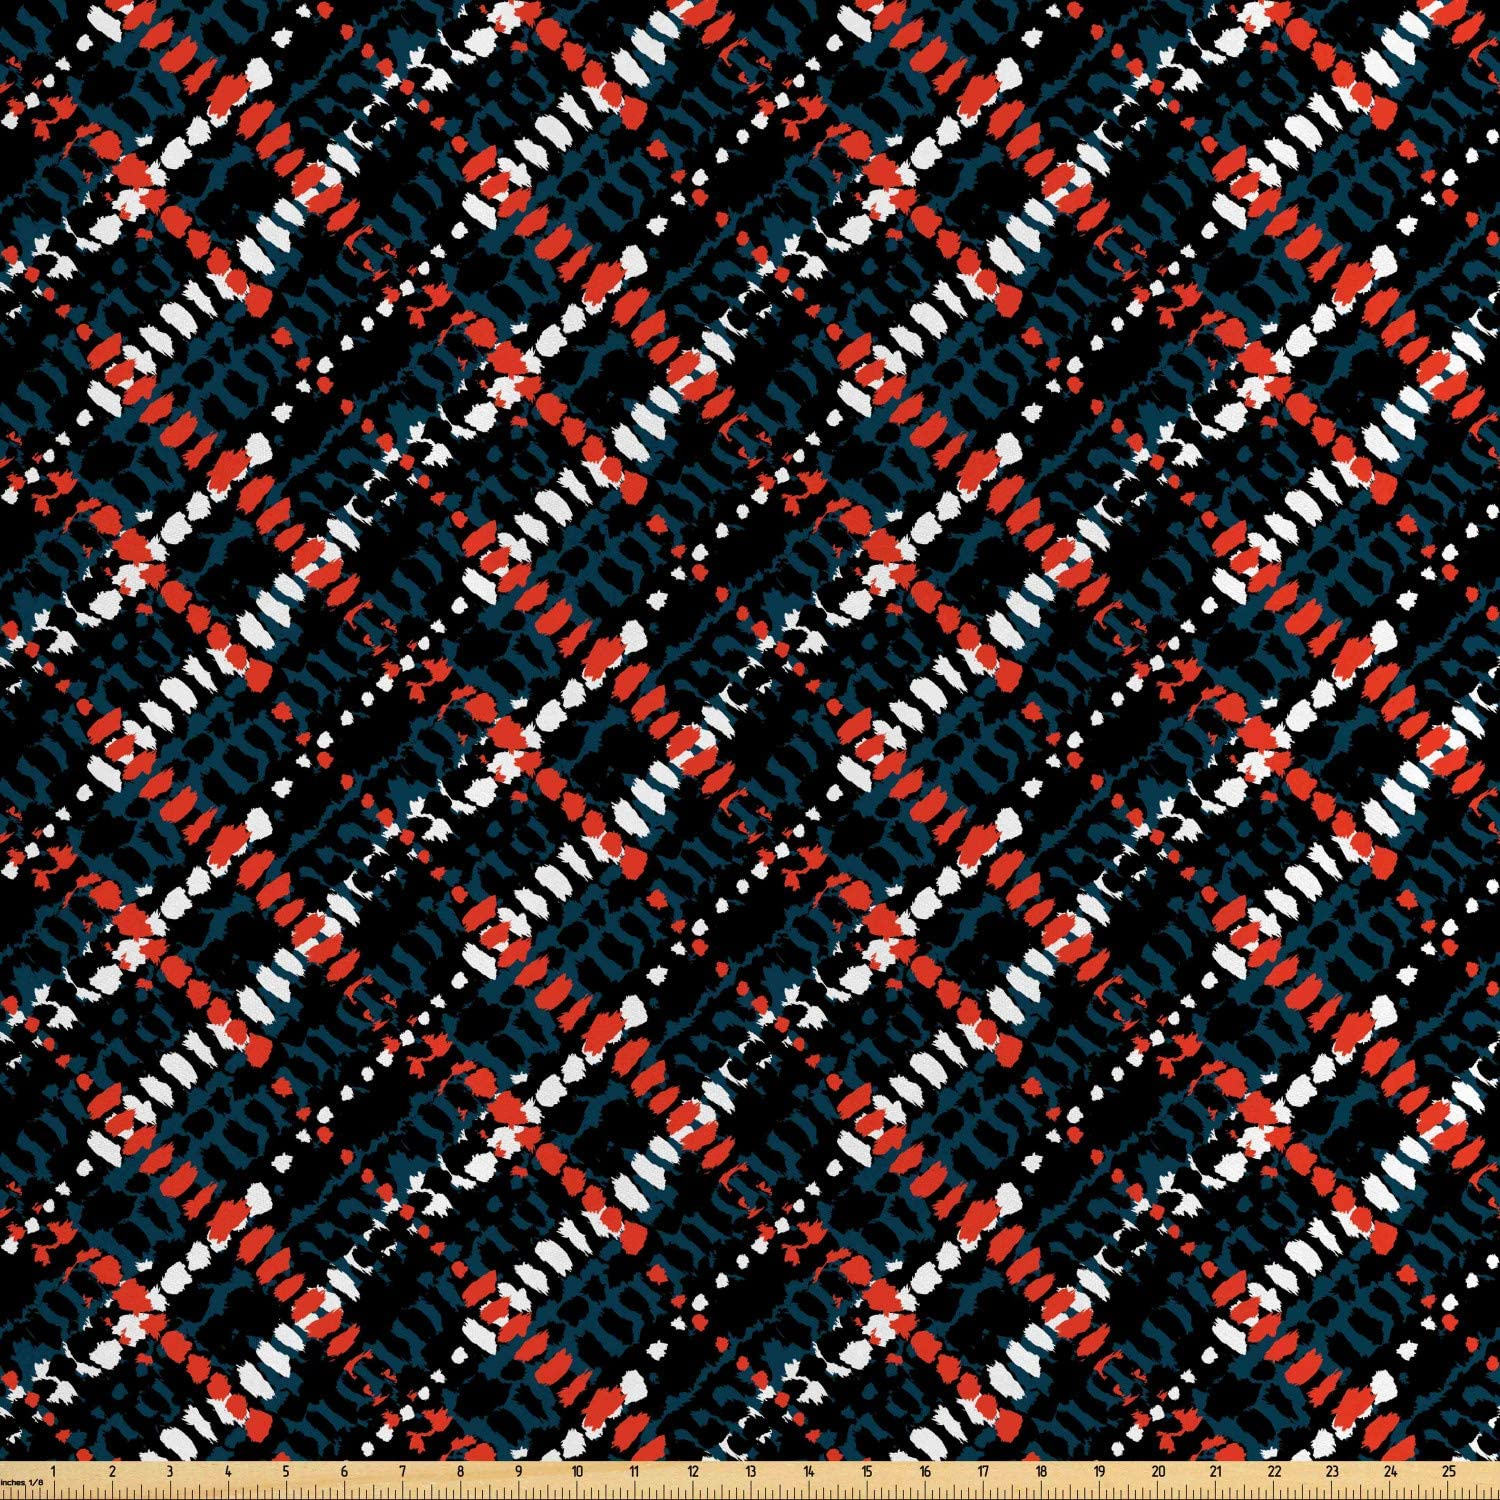 Ambesonne African Fabric by The Yard, Grunge Pattern Plaid Style with Bohemian Influences Native and Hipster, Decorative Satin Fabric for Home Textiles and Crafts, Multicolor